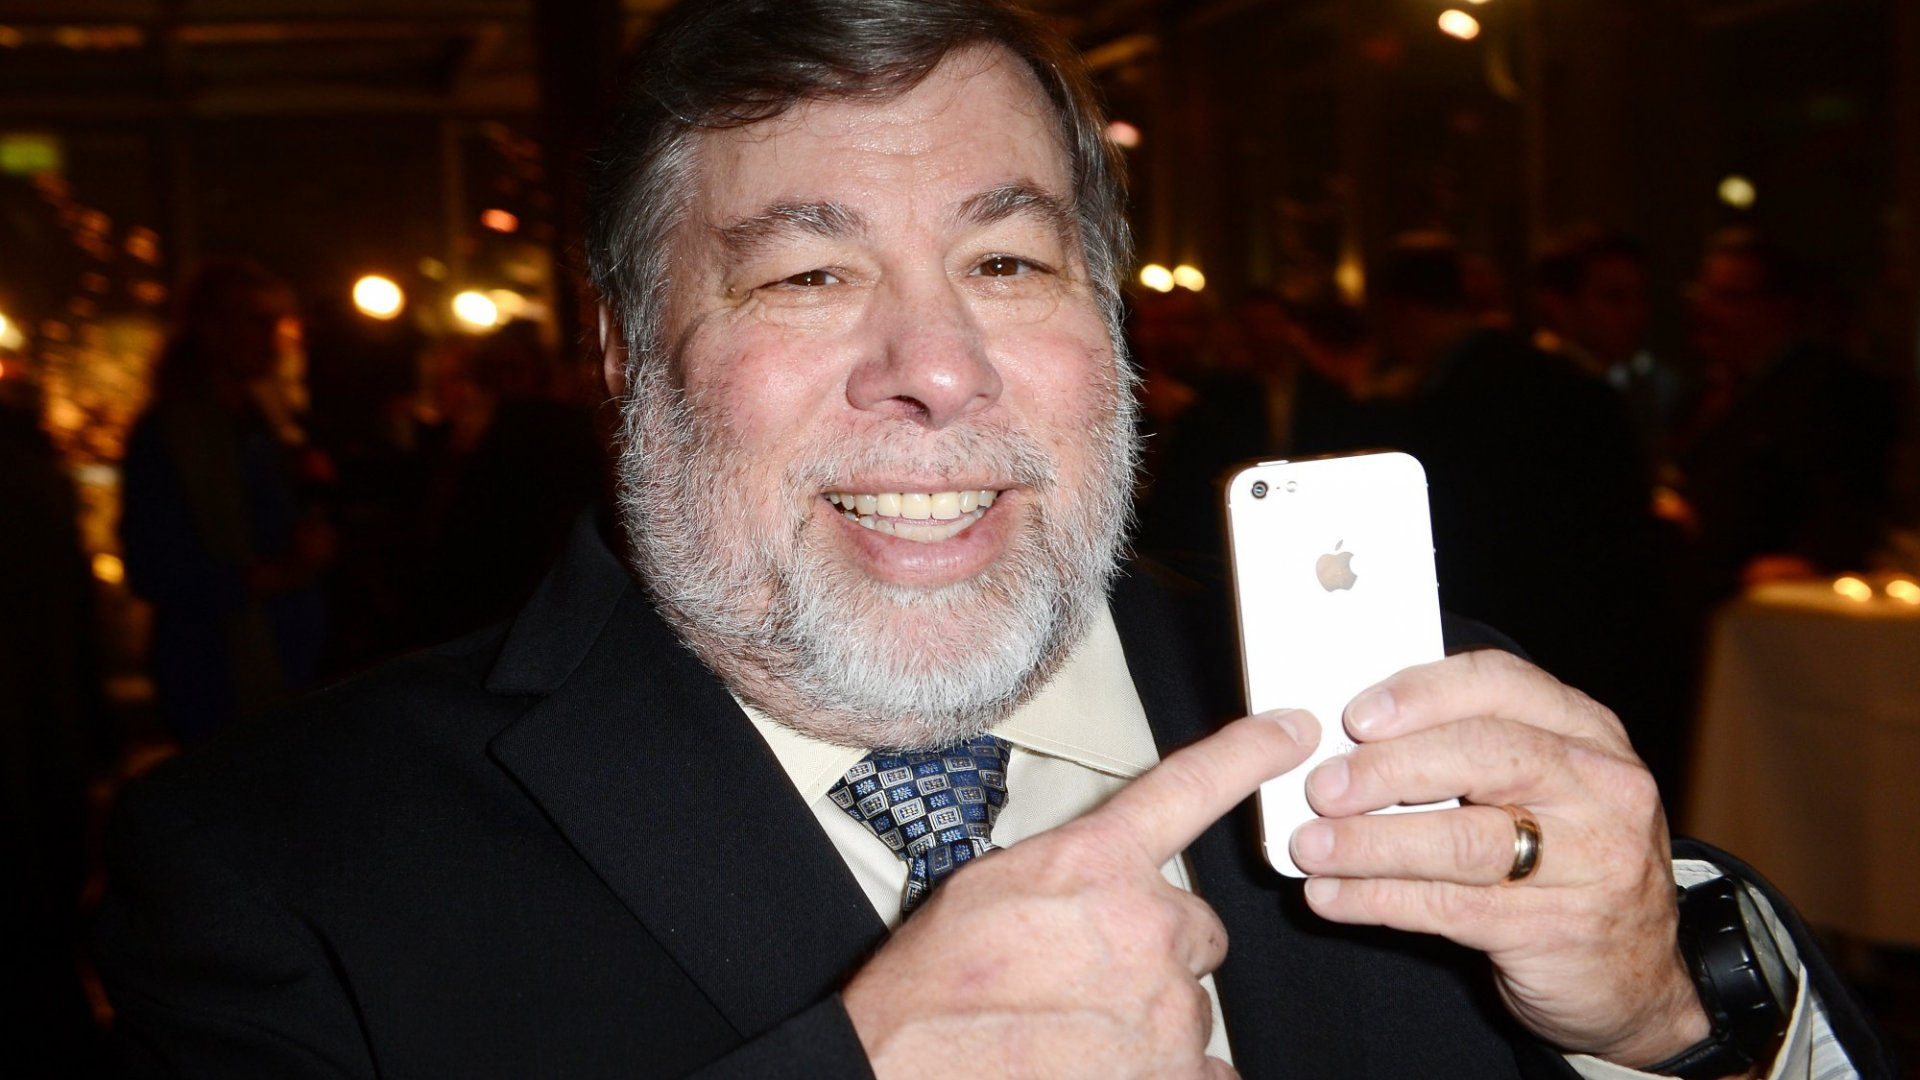 Apple Co-Founder Steve Wozniak Launches Digital School 'Woz U'